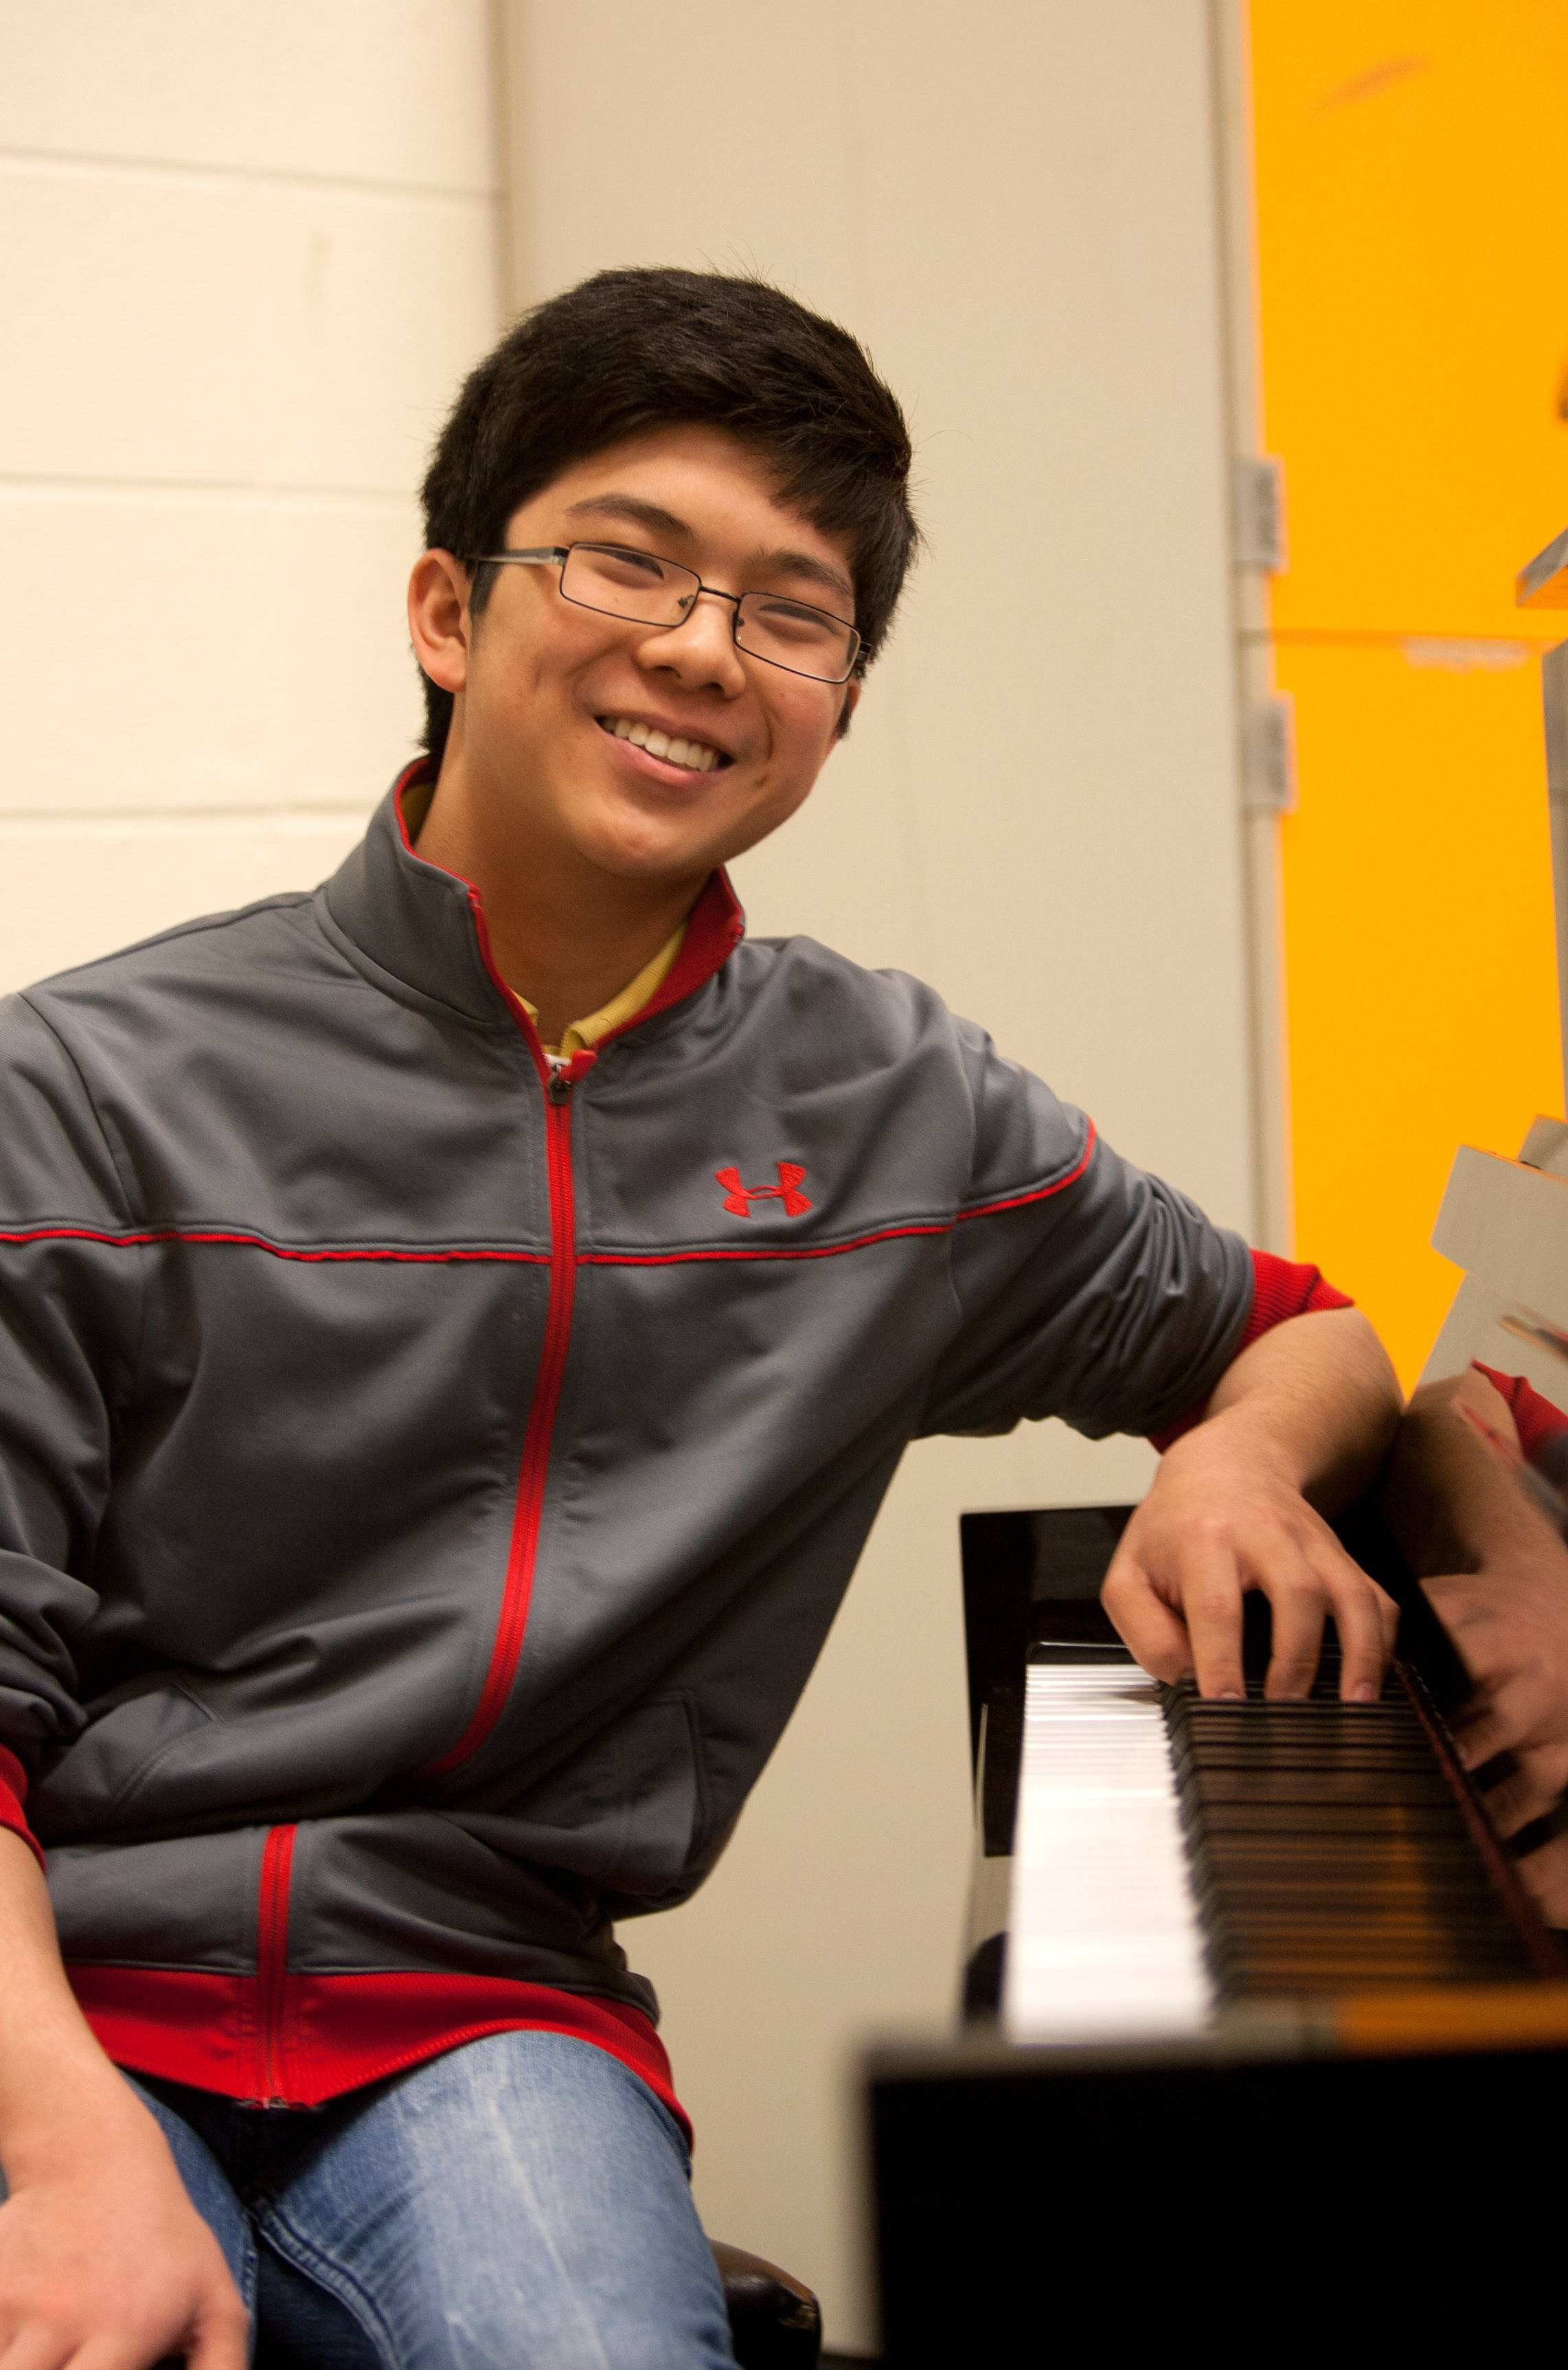 Timothy Zhou, 17, a junior at the Illinois Mathematics and Science Academy, is a National YoungArts Foundation honorable mention winner in music, an accomplished chess player and a fledgling mathematician. Recognizing patterns, he says, is key to succeeding in all three disciplines.